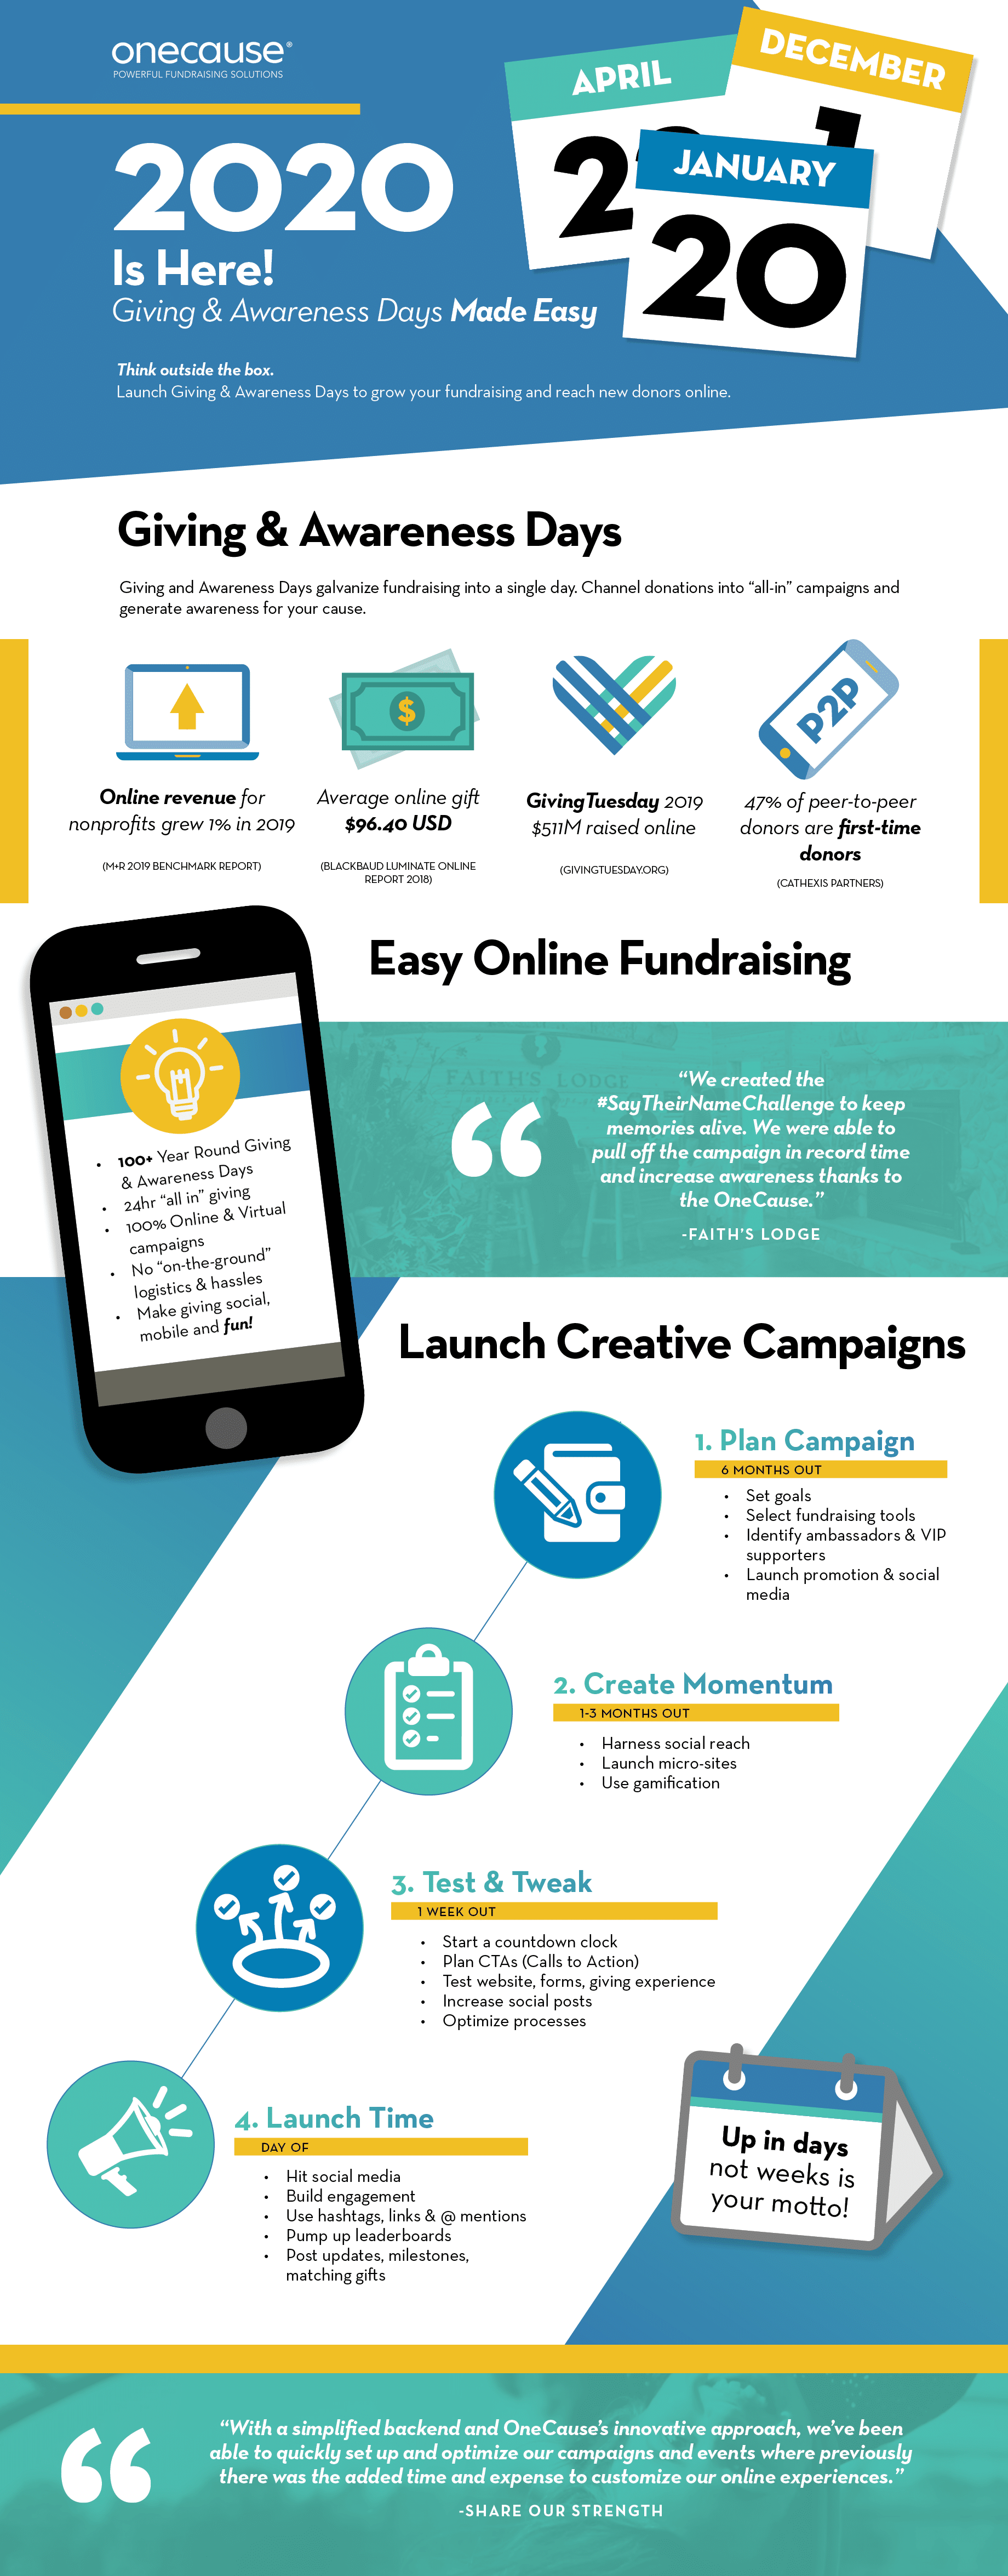 OneCause Giving & Awareness Days 2020 Infographic